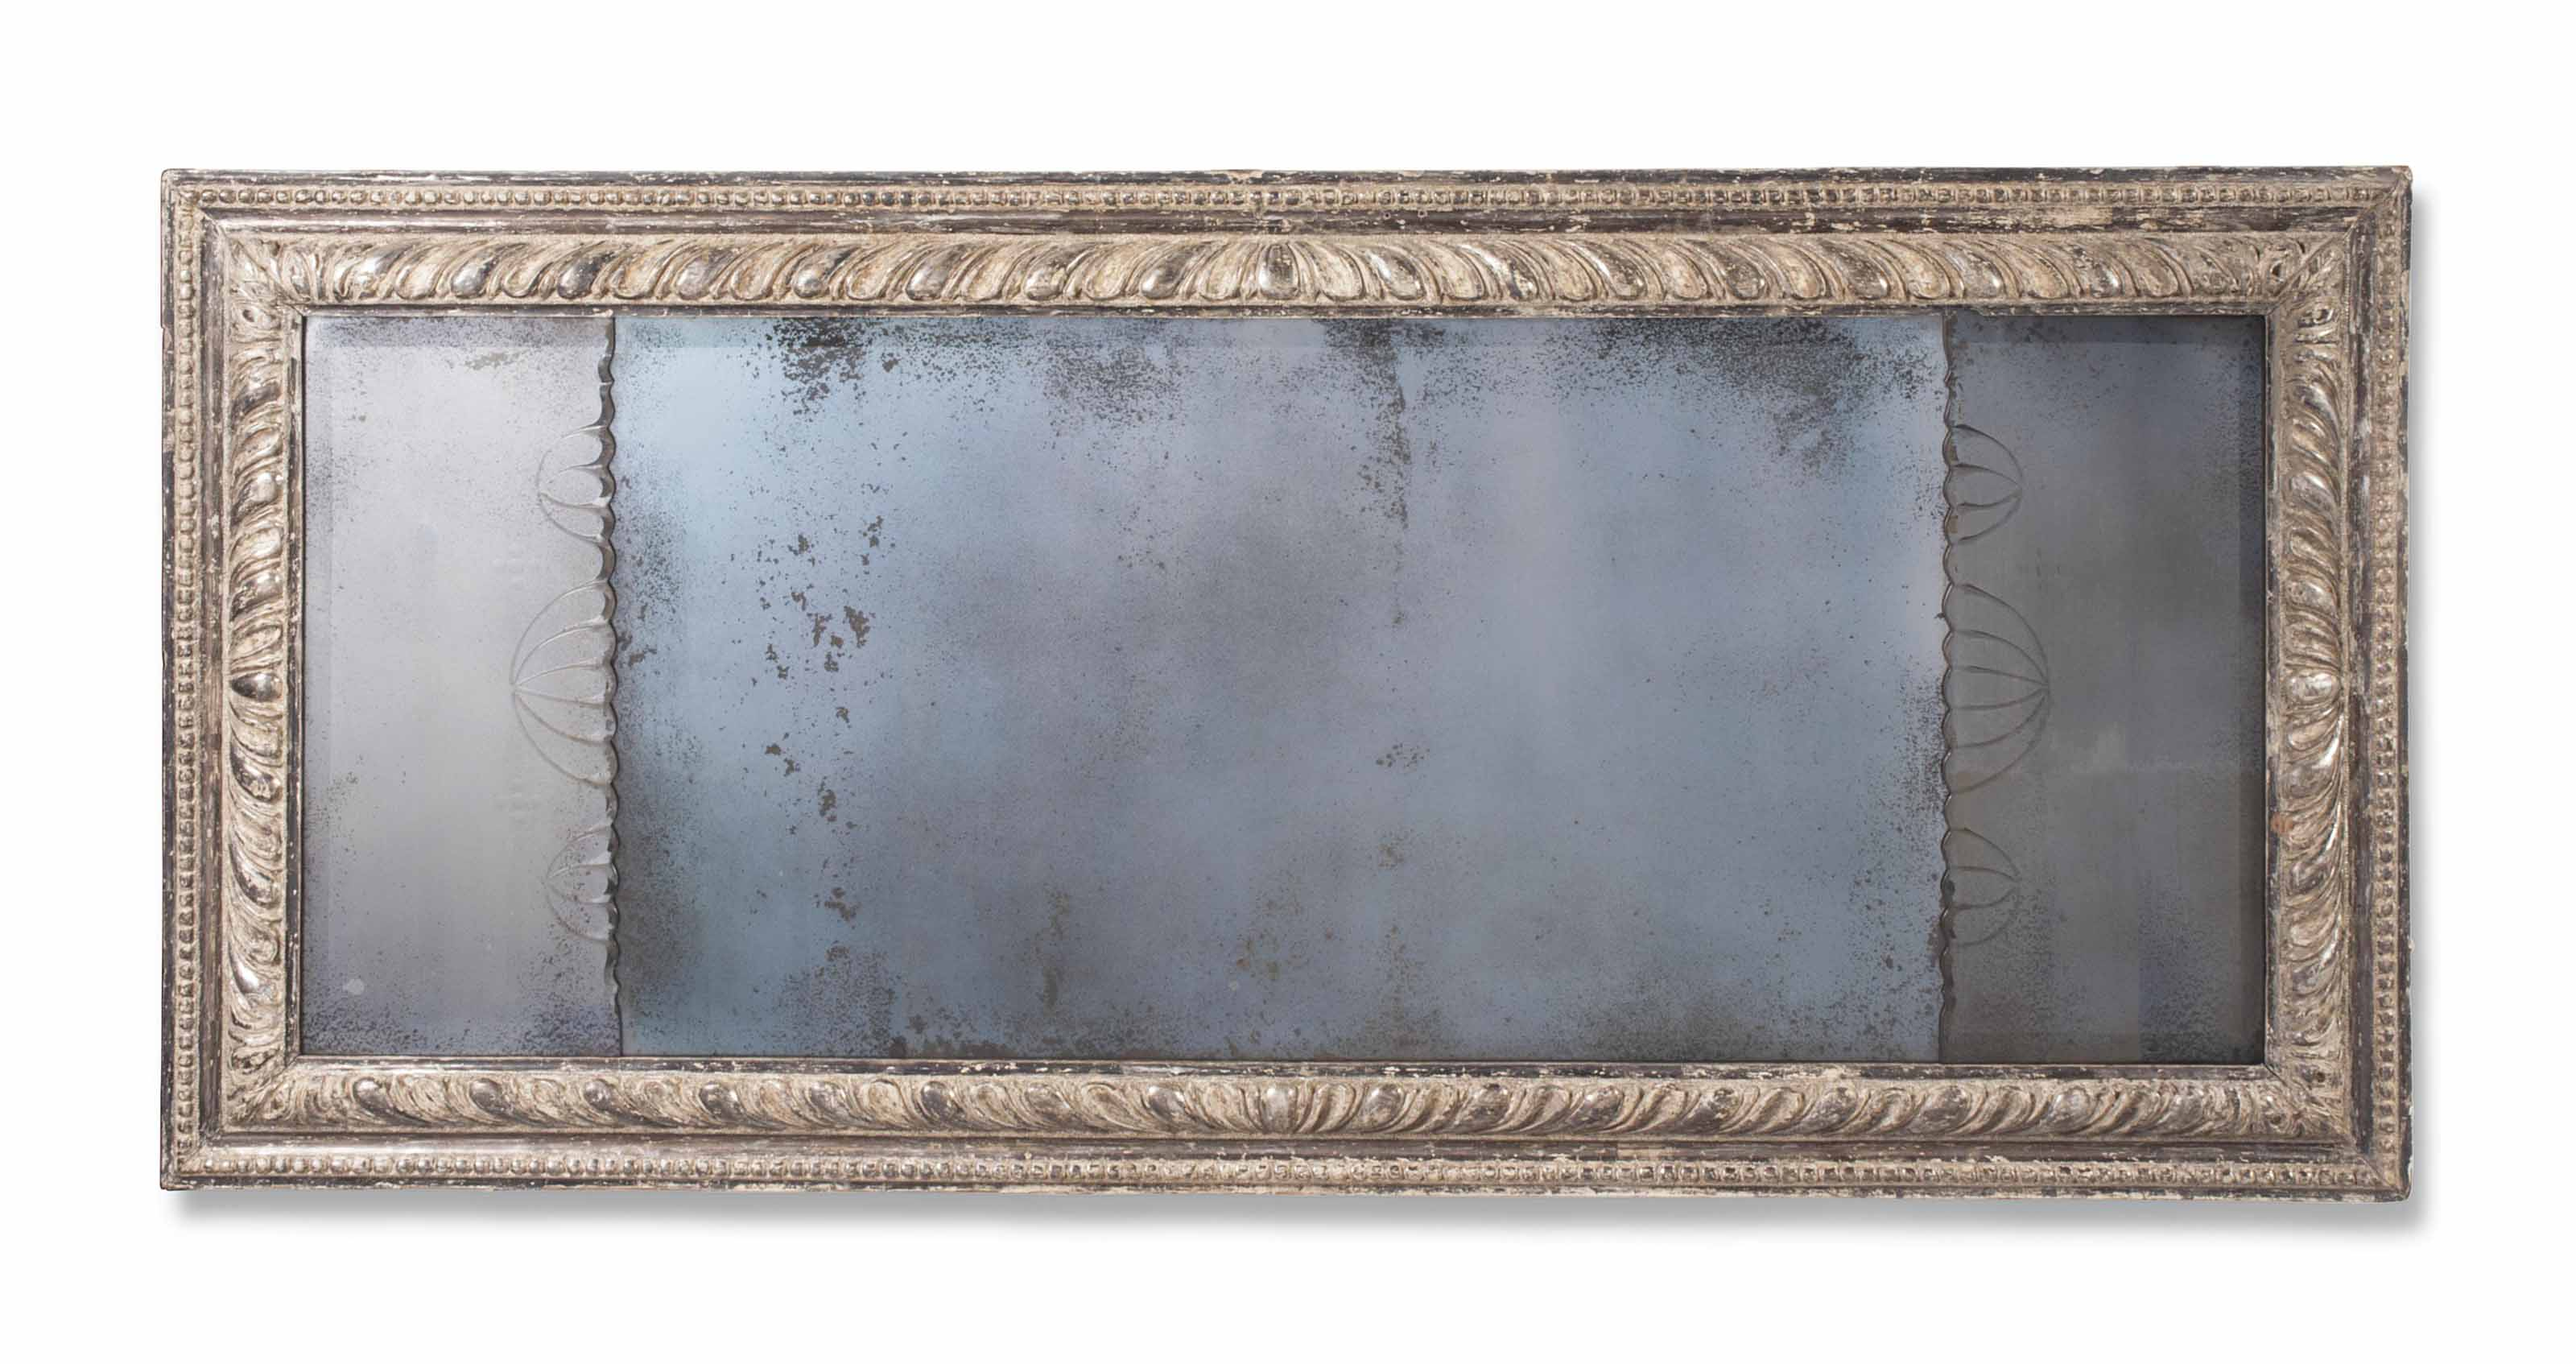 A GEORGE I SILVERED OVERMANTEL